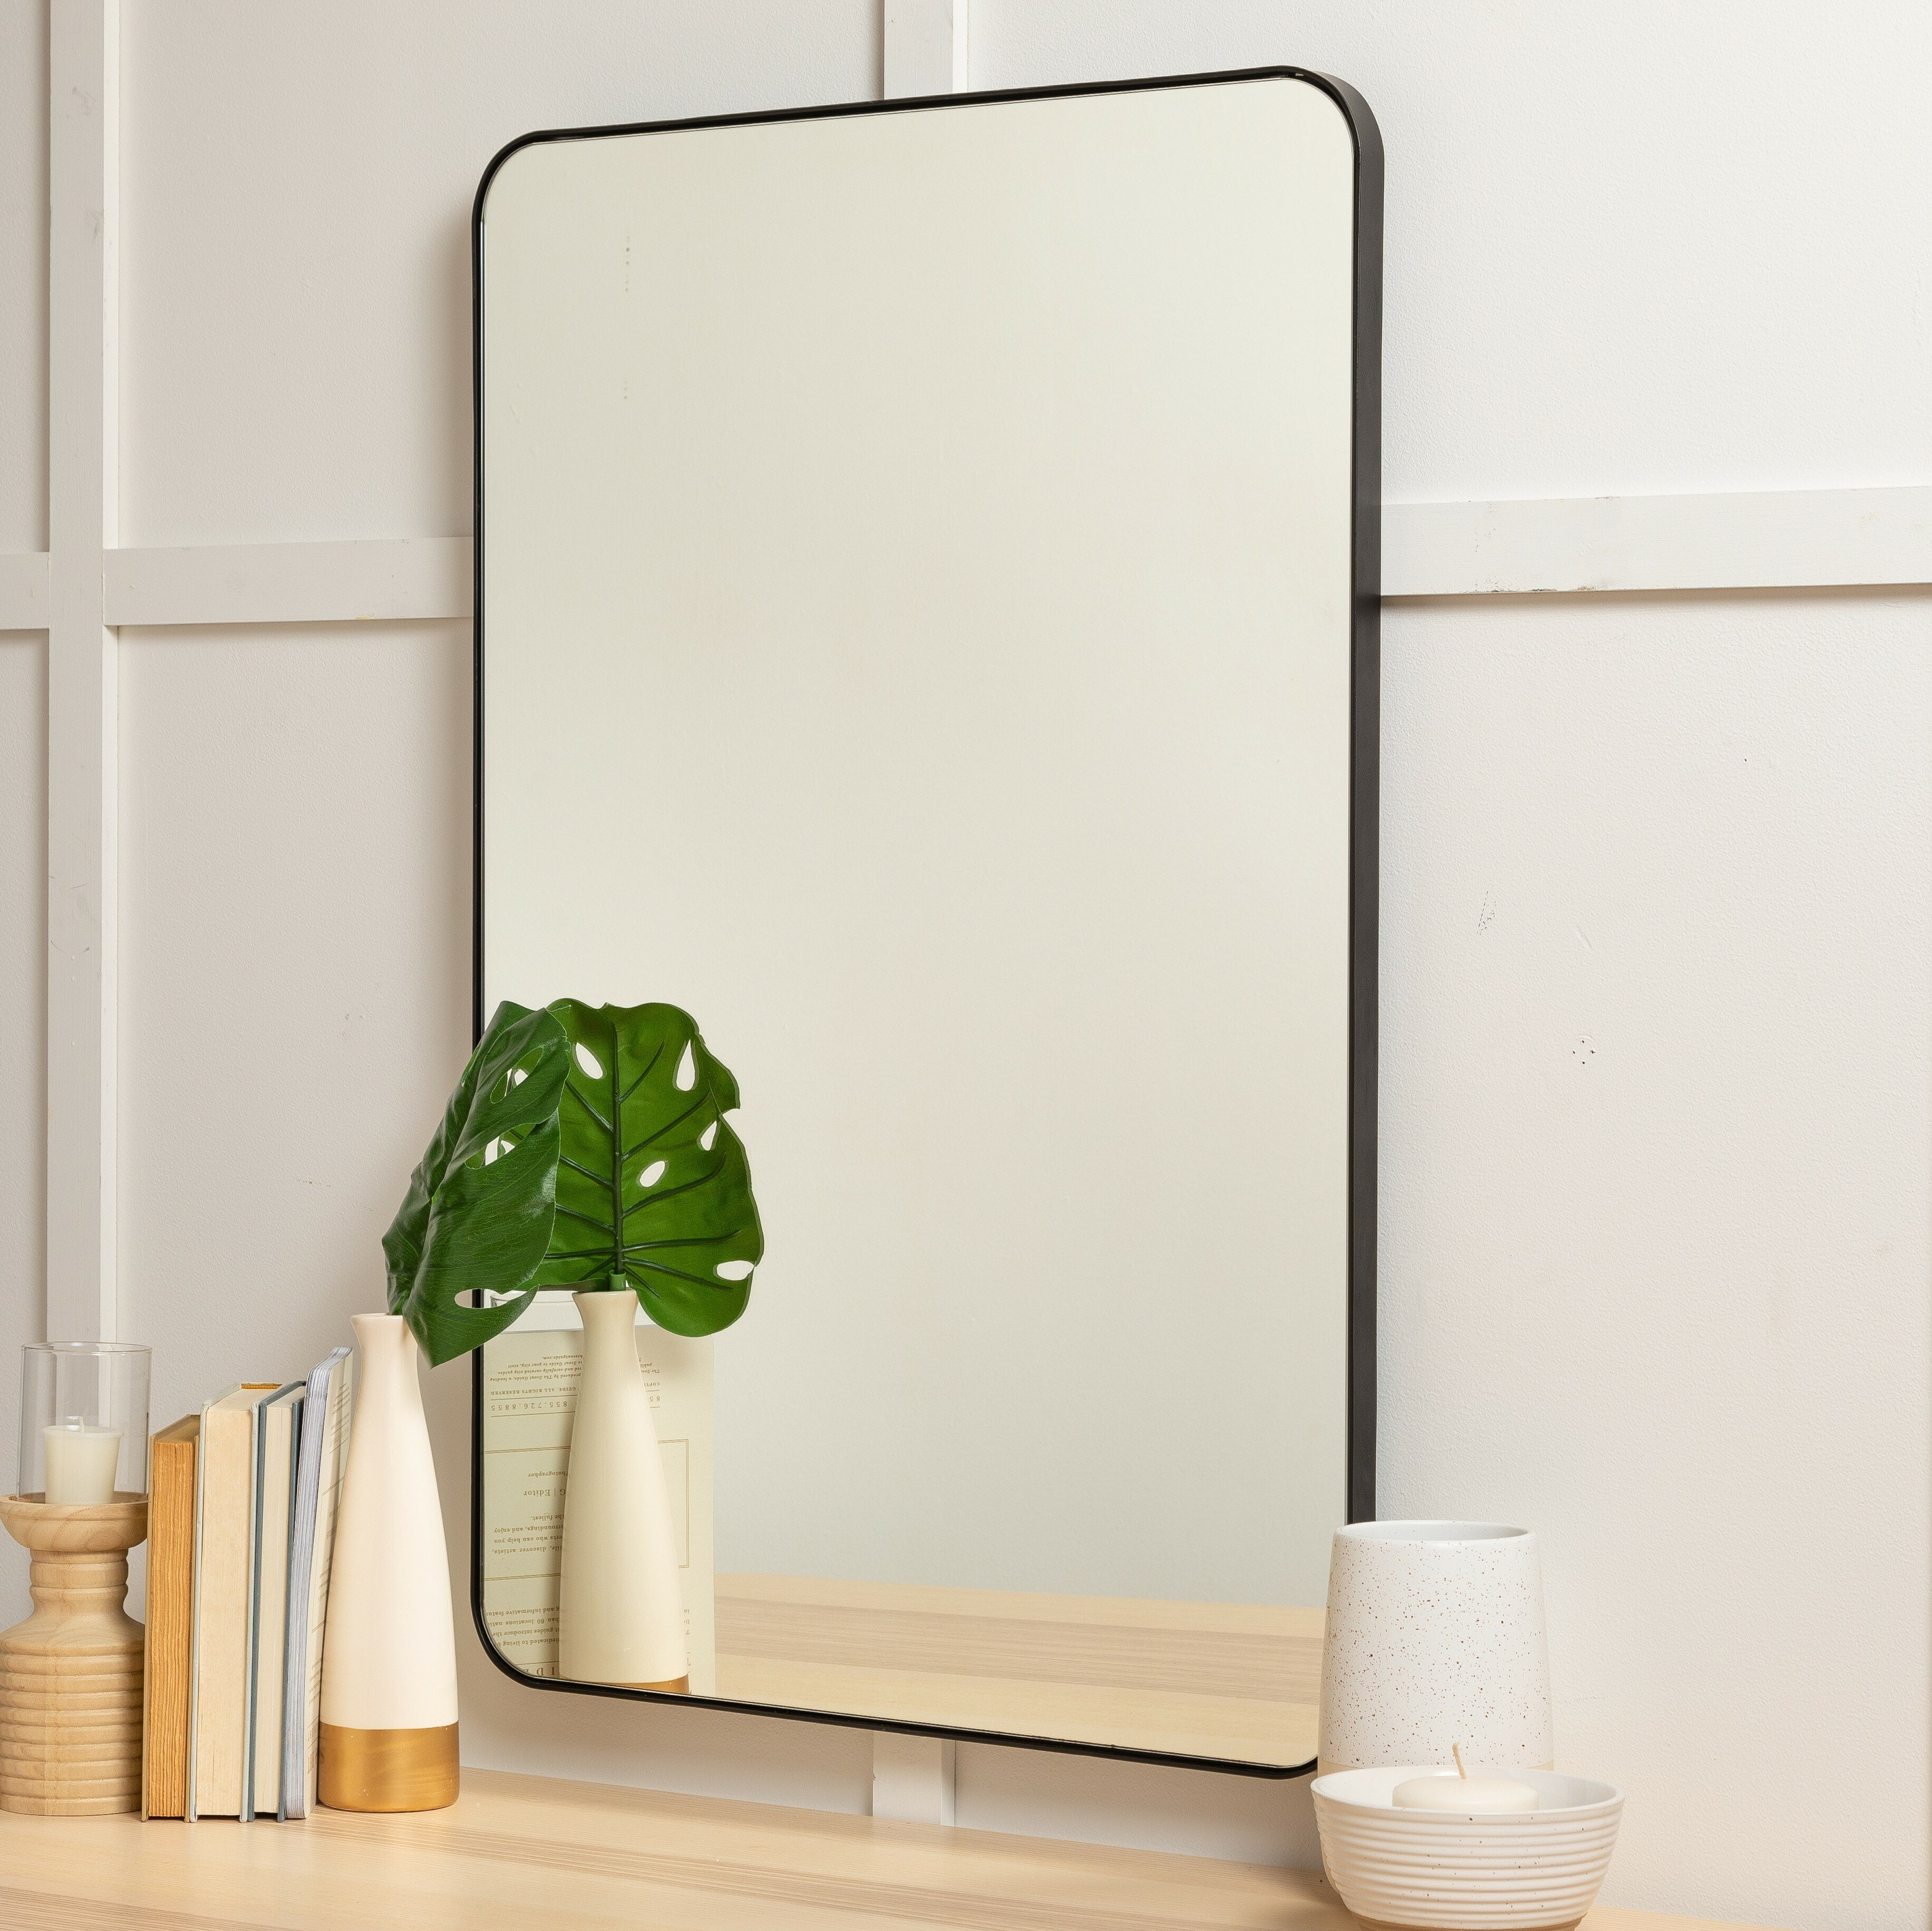 Leverett Wall Mirror In Latest Wavy Wall Mirrors (View 18 of 20)